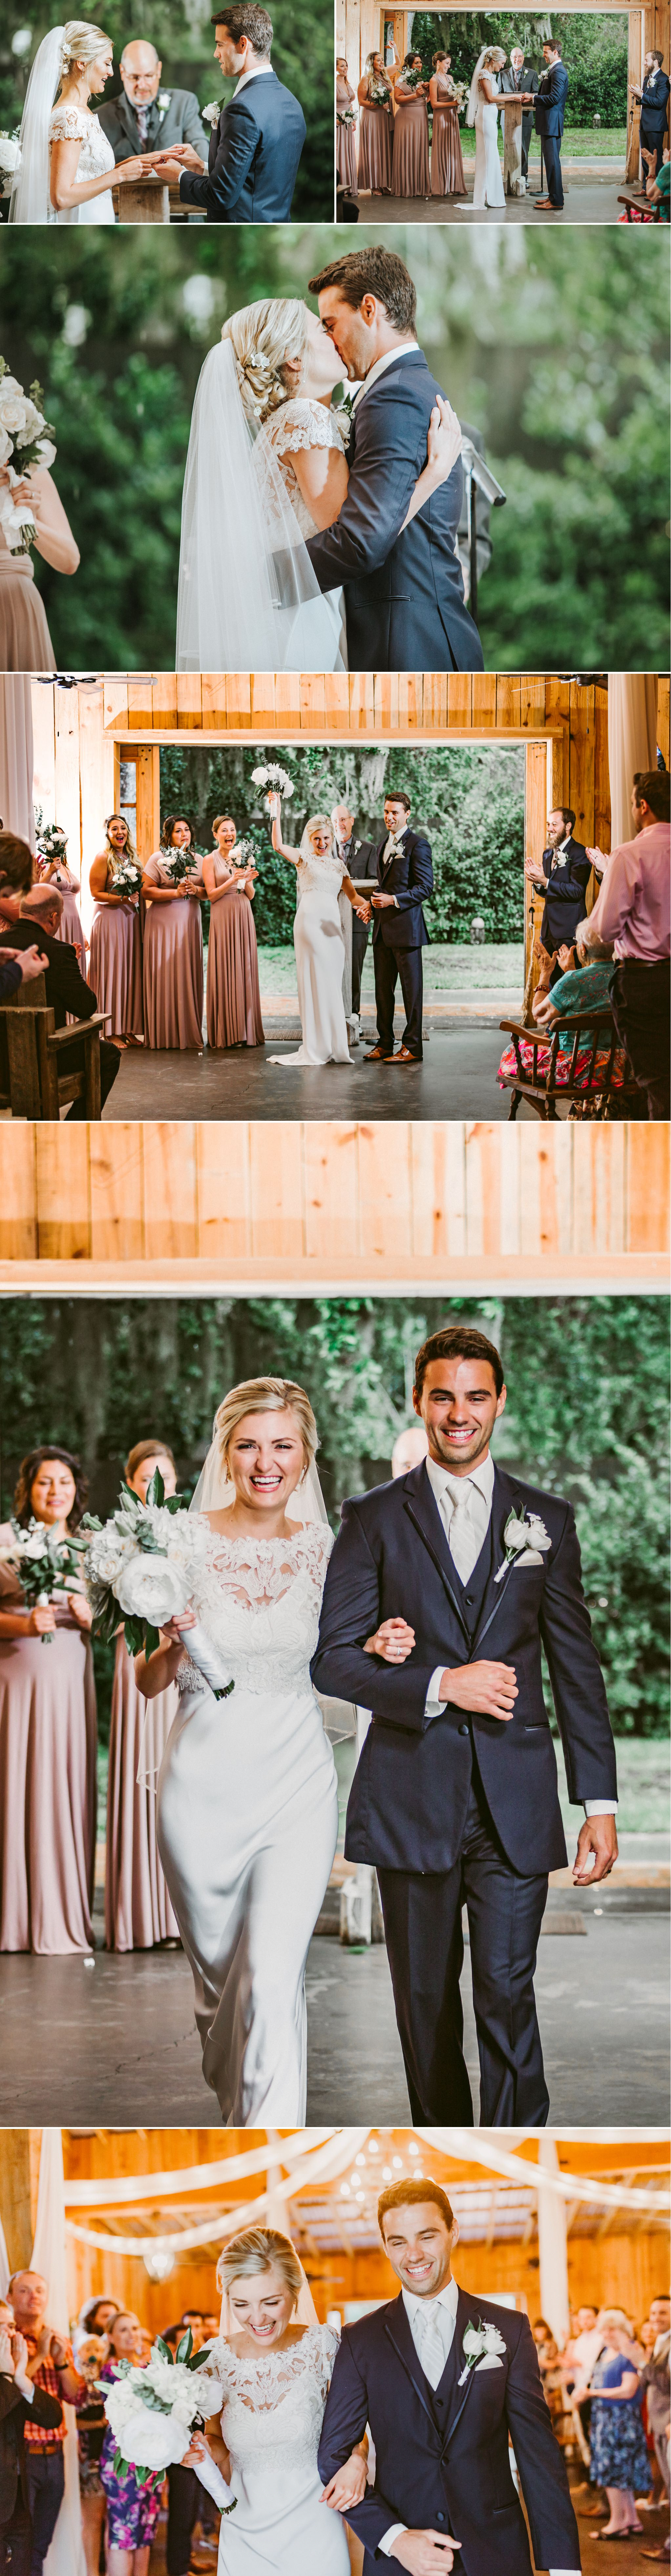 Boho Chic Orlando Wedding Photography Delameter House - Angela + Max 13.jpg